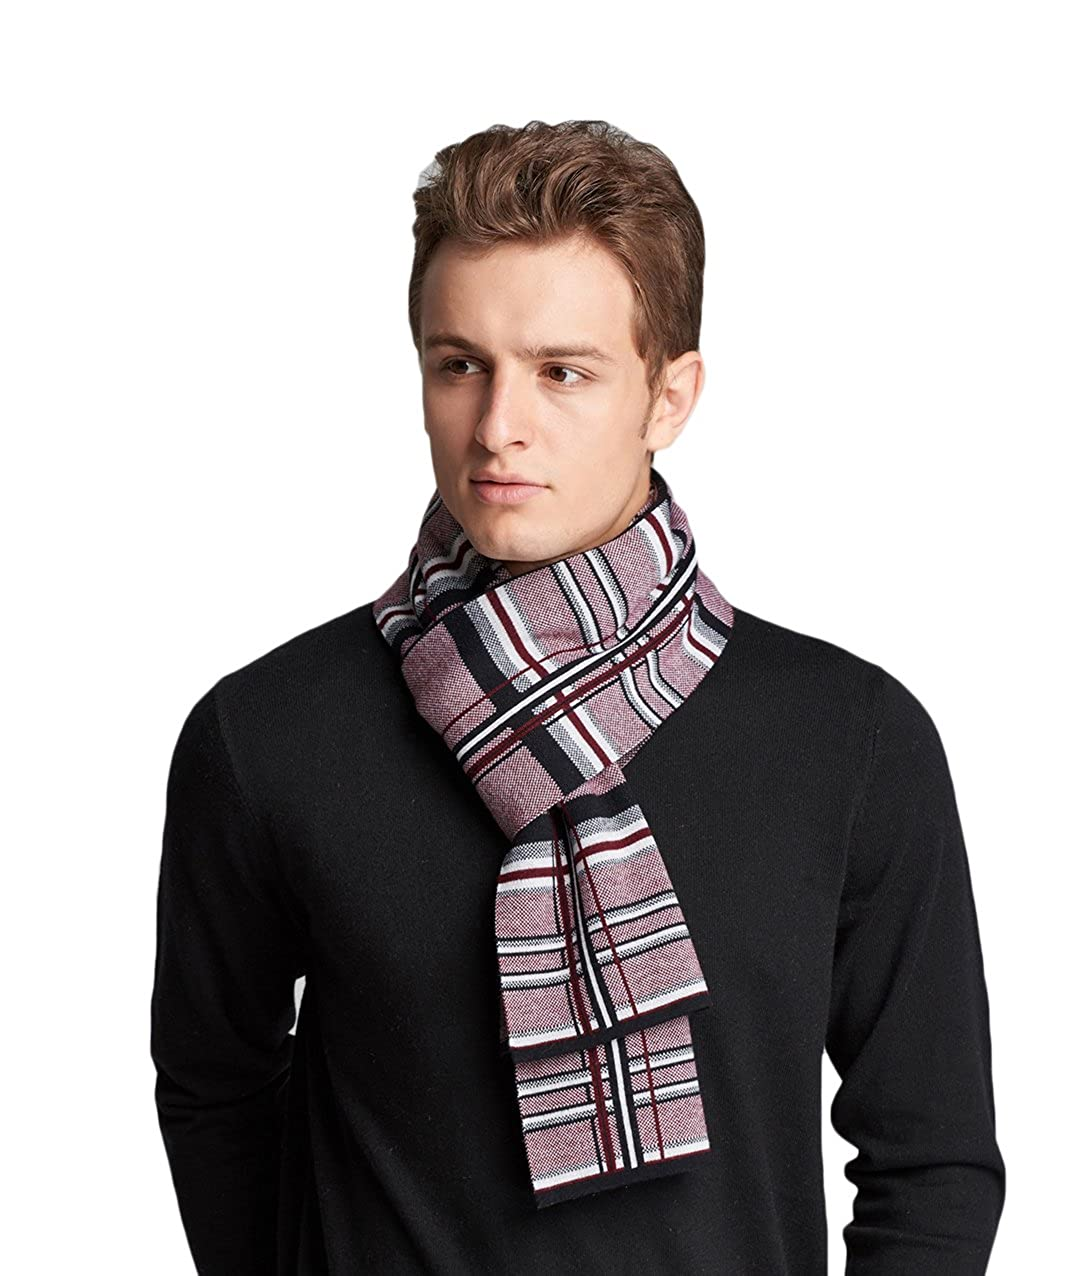 RIONA Winter Classical Cashmere Feel Warm Plaid Stripe Australian Wool Knitted Scarf with Gift Box RIW8048Black